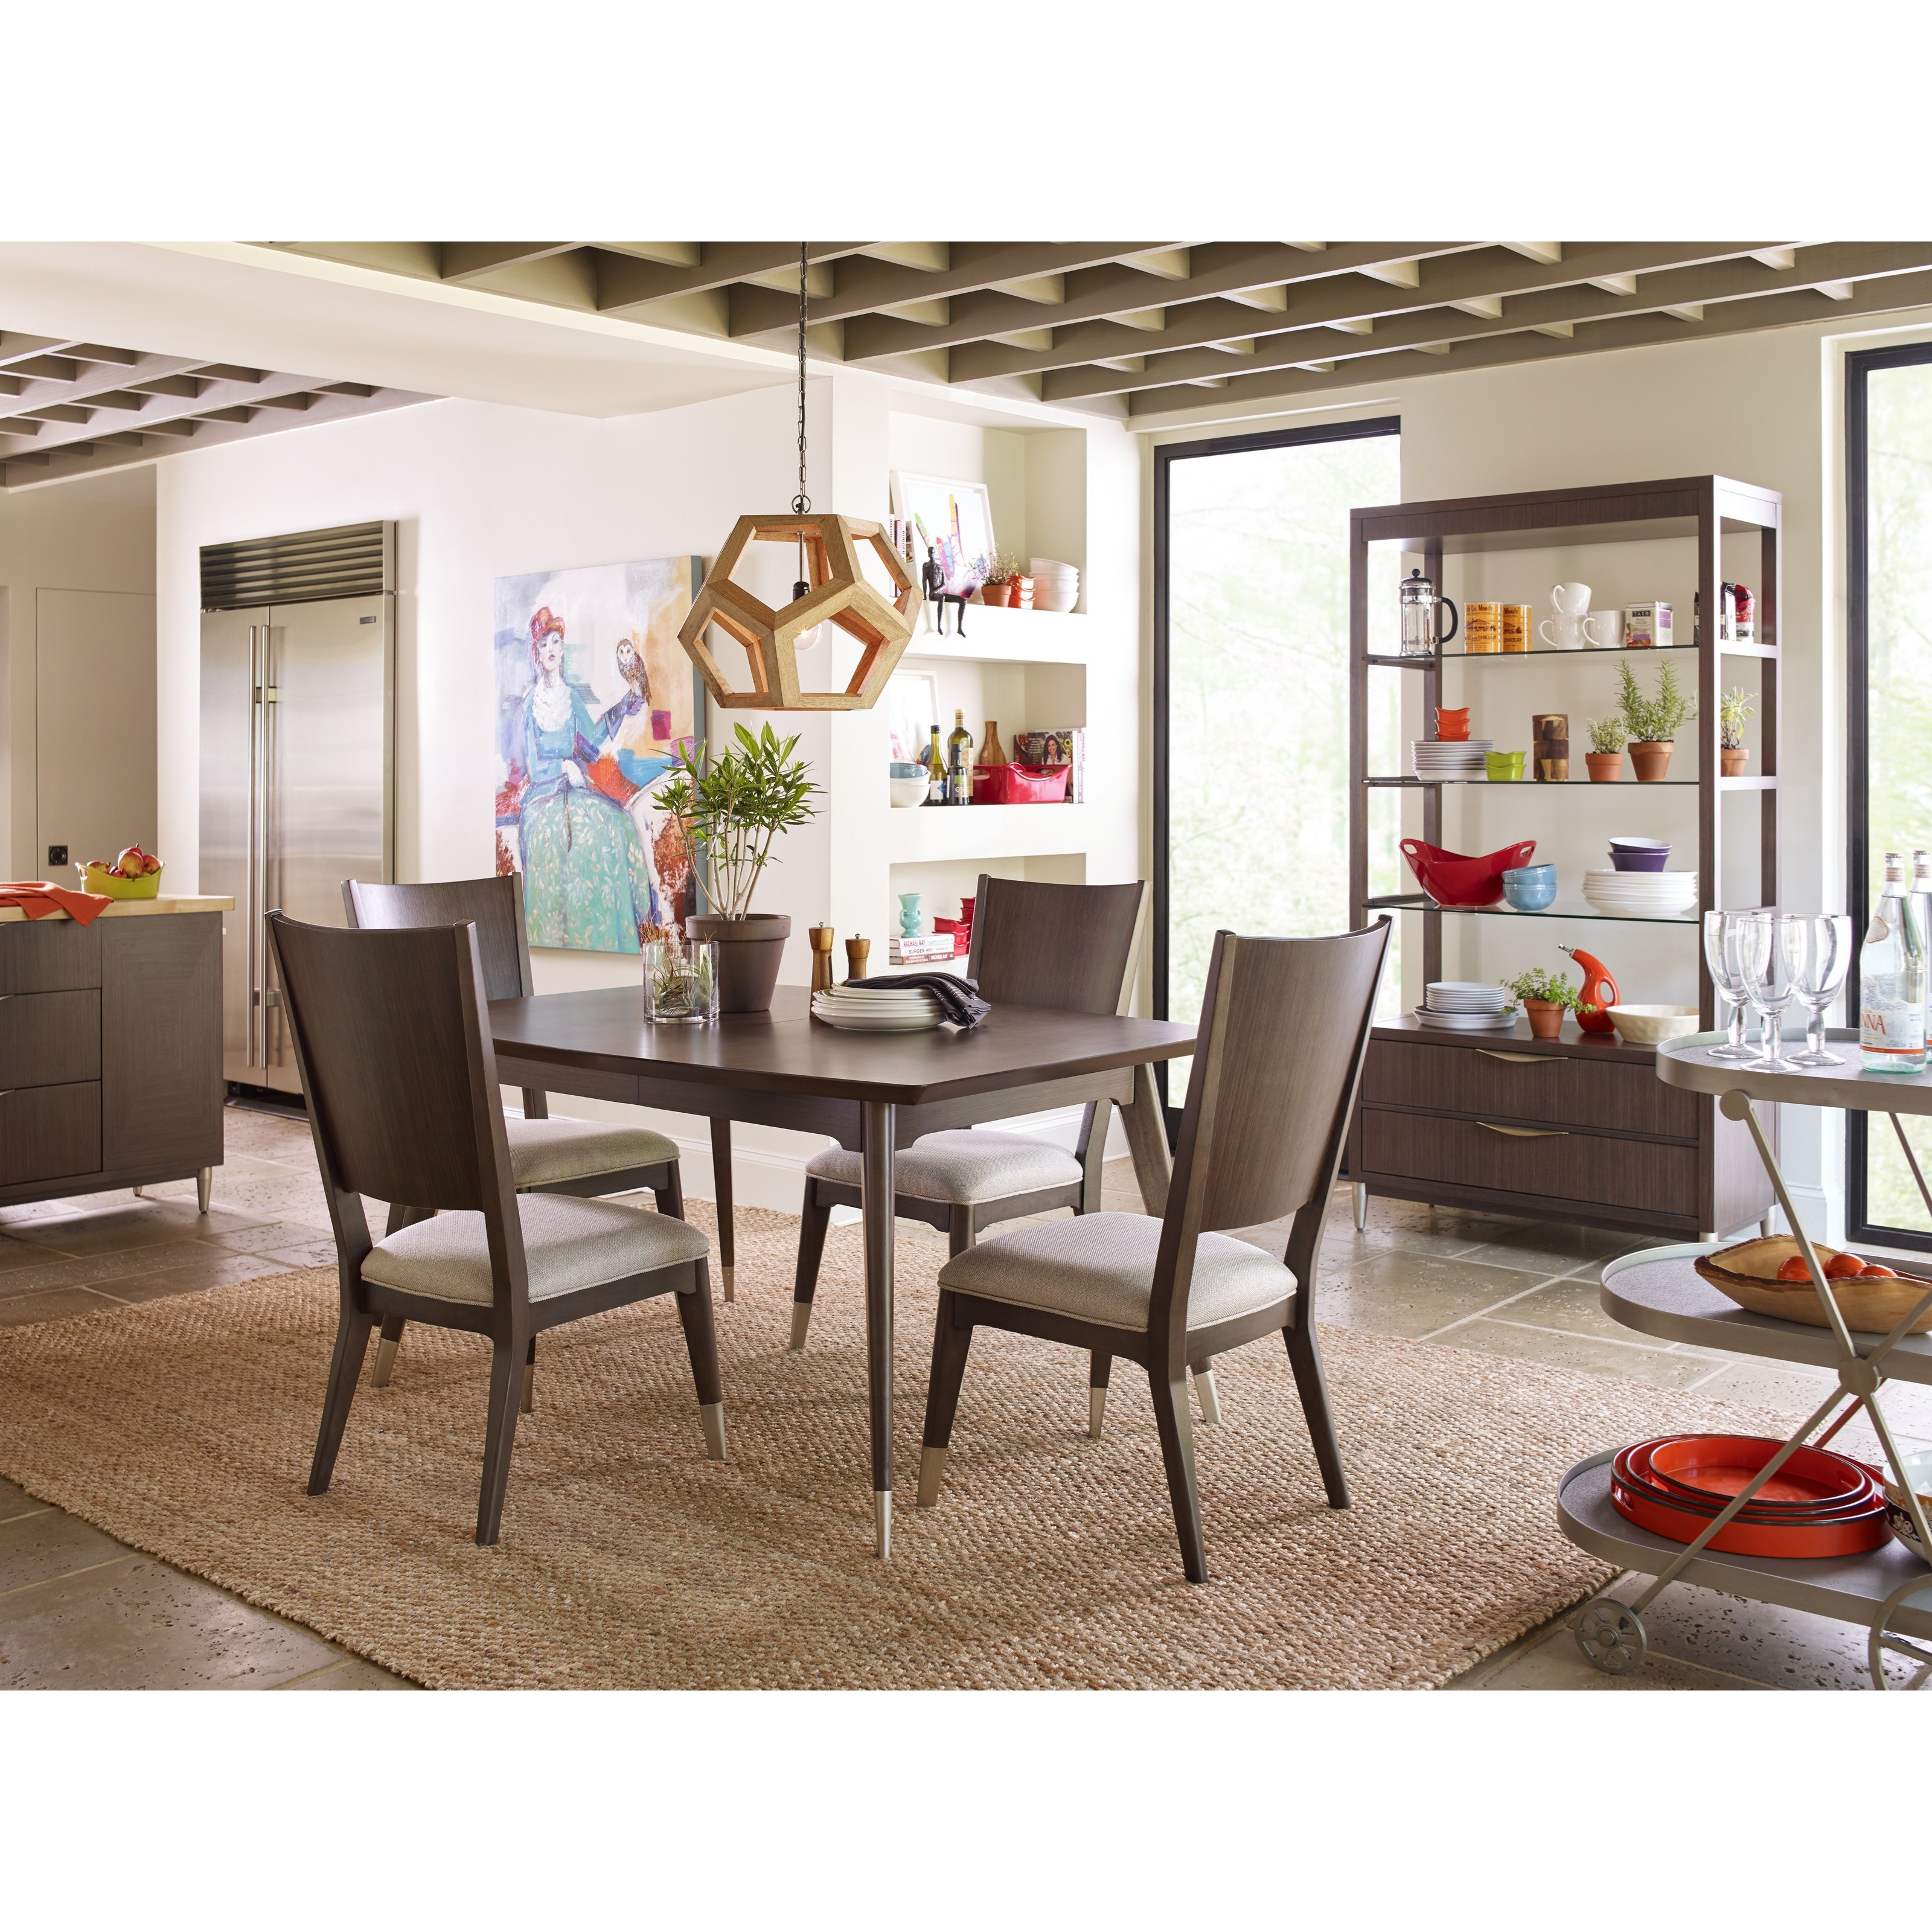 Rachael Ray Home by Legacy Classic Soho Dining Room Group - Item Number: 6020 Dining Room Group 1